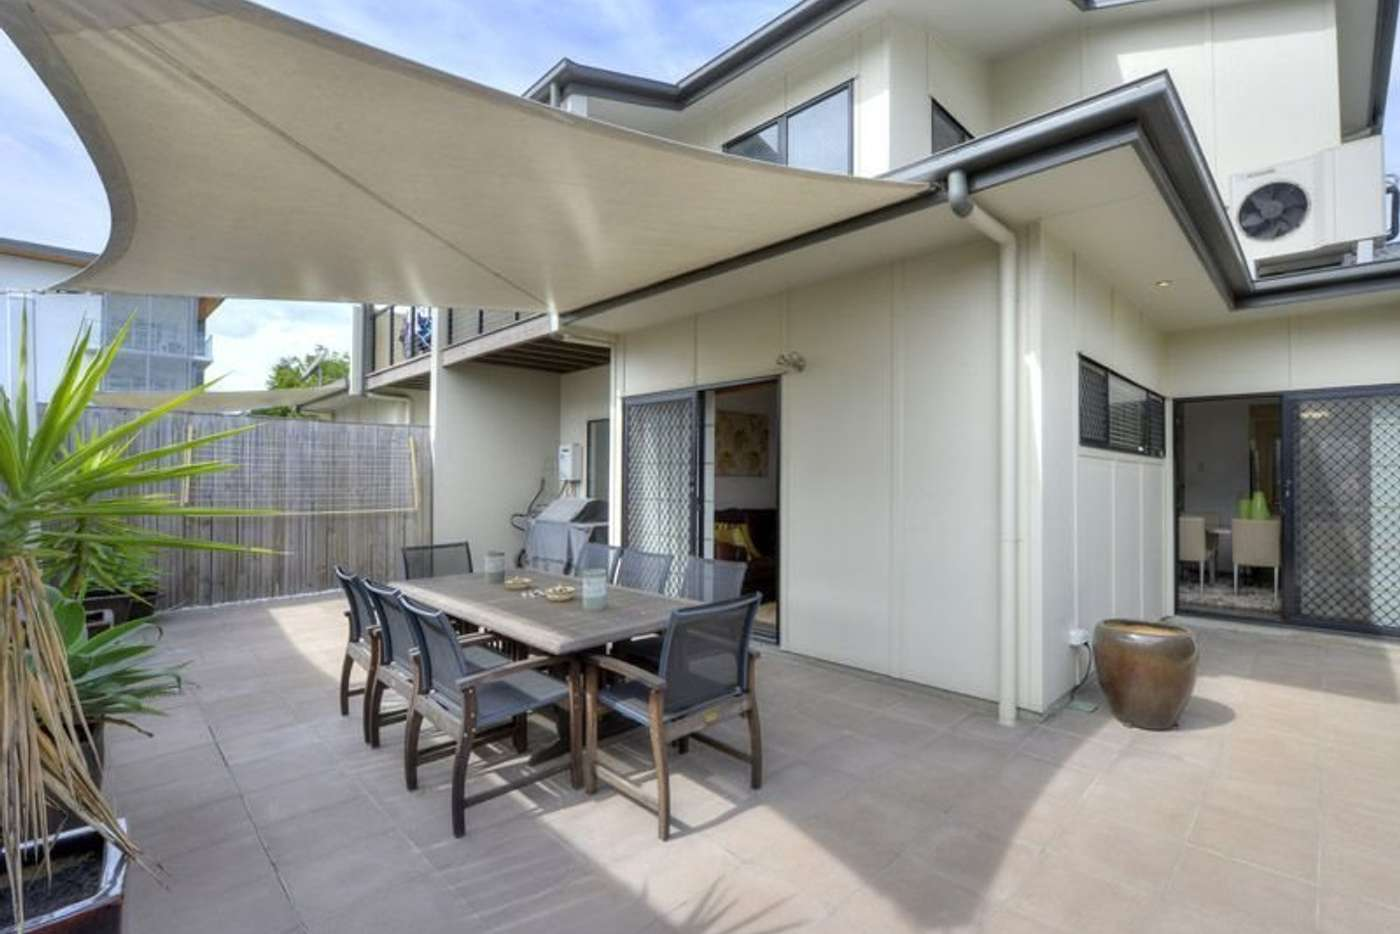 Seventh view of Homely townhouse listing, 12 Reach Place, Bulimba QLD 4171